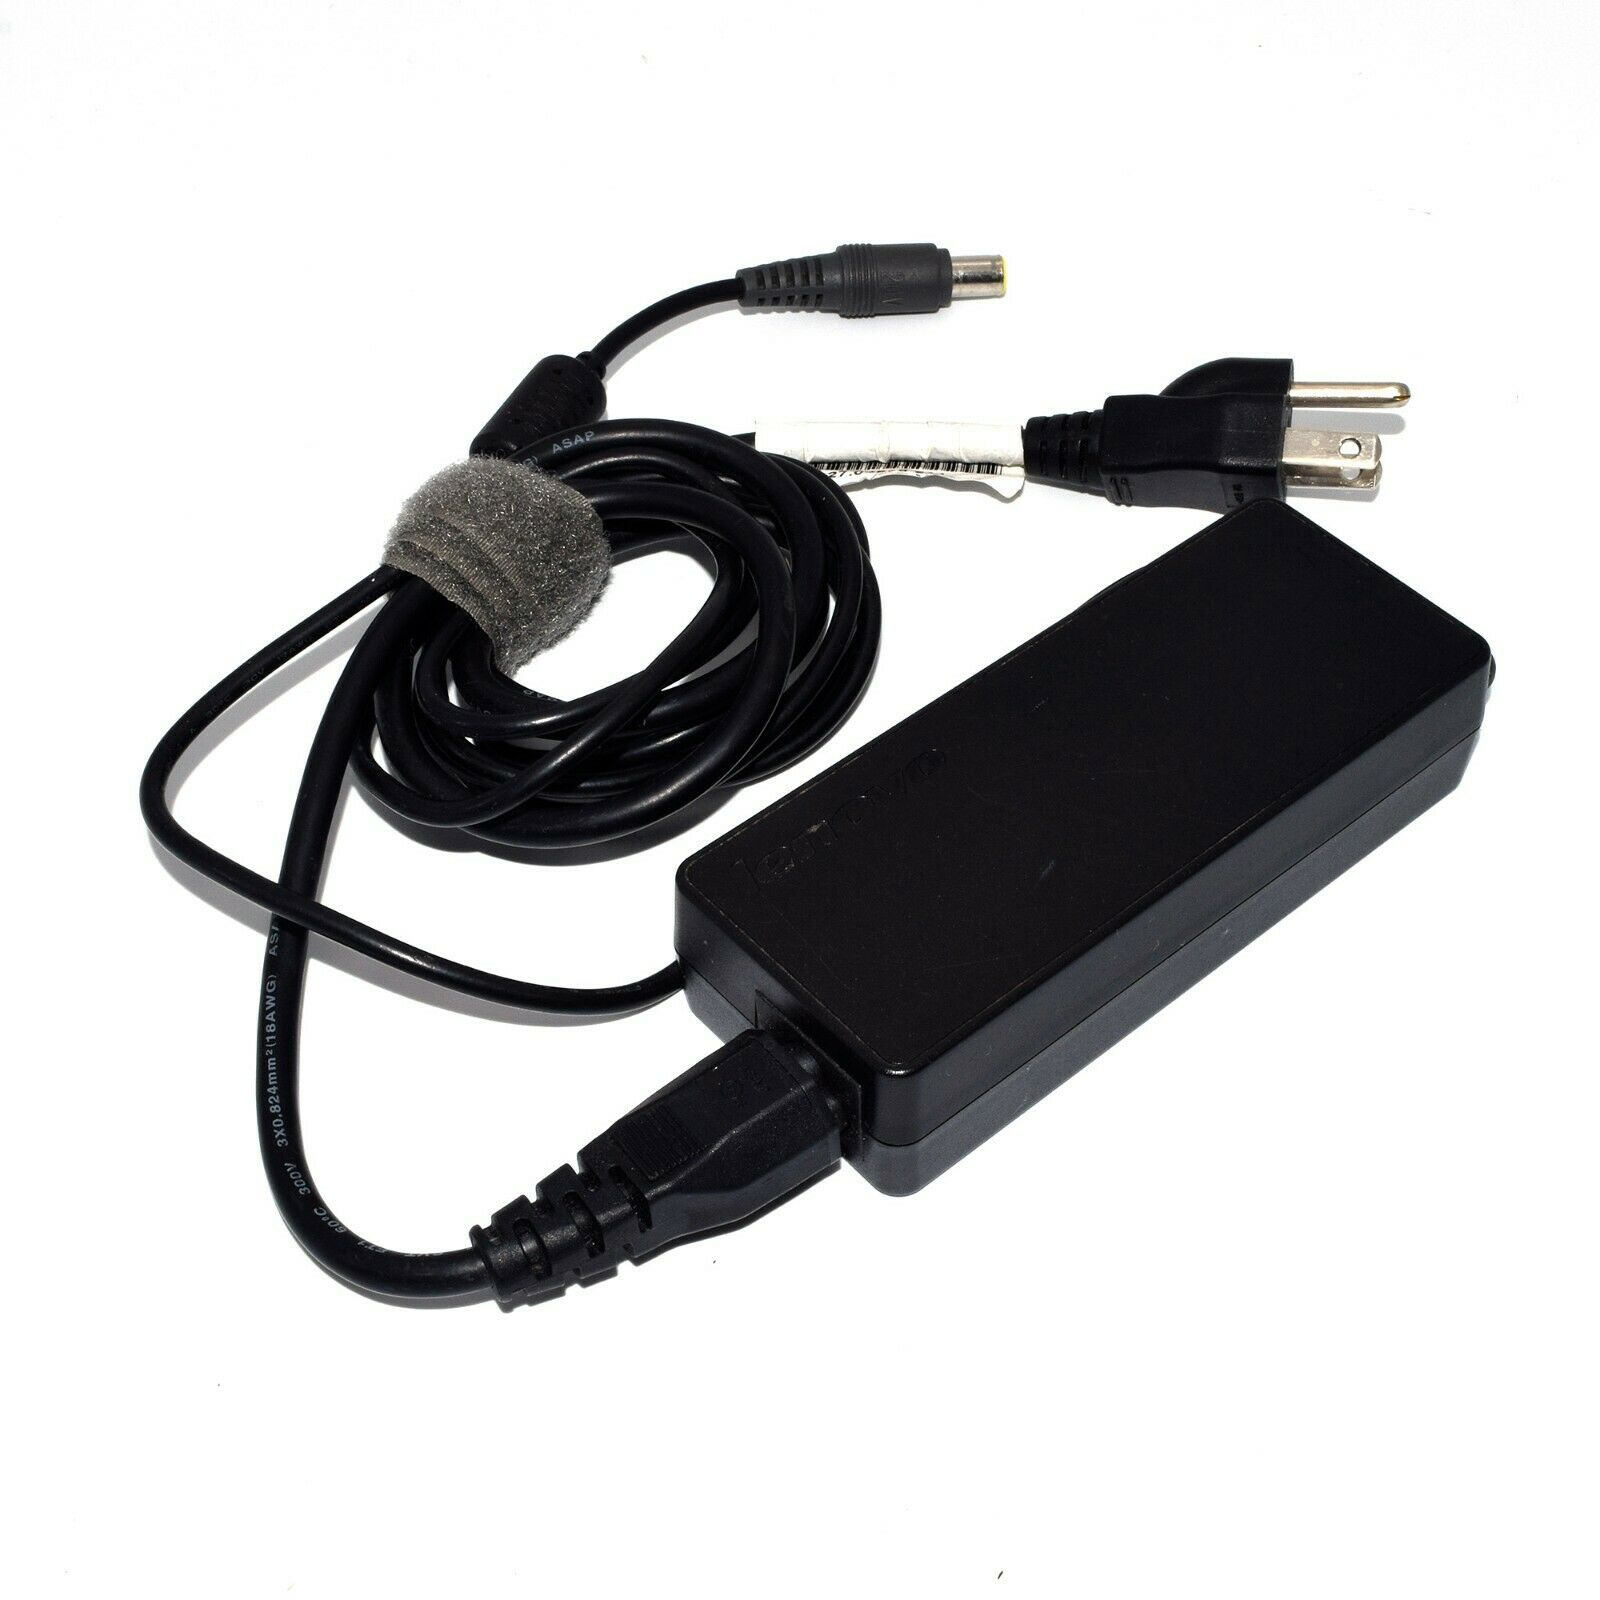 iTEKIRO 10-in-1 USB Charging Cable iTEKIRO AC Wall DC Car Battery Charger Kit for Canon BP-214